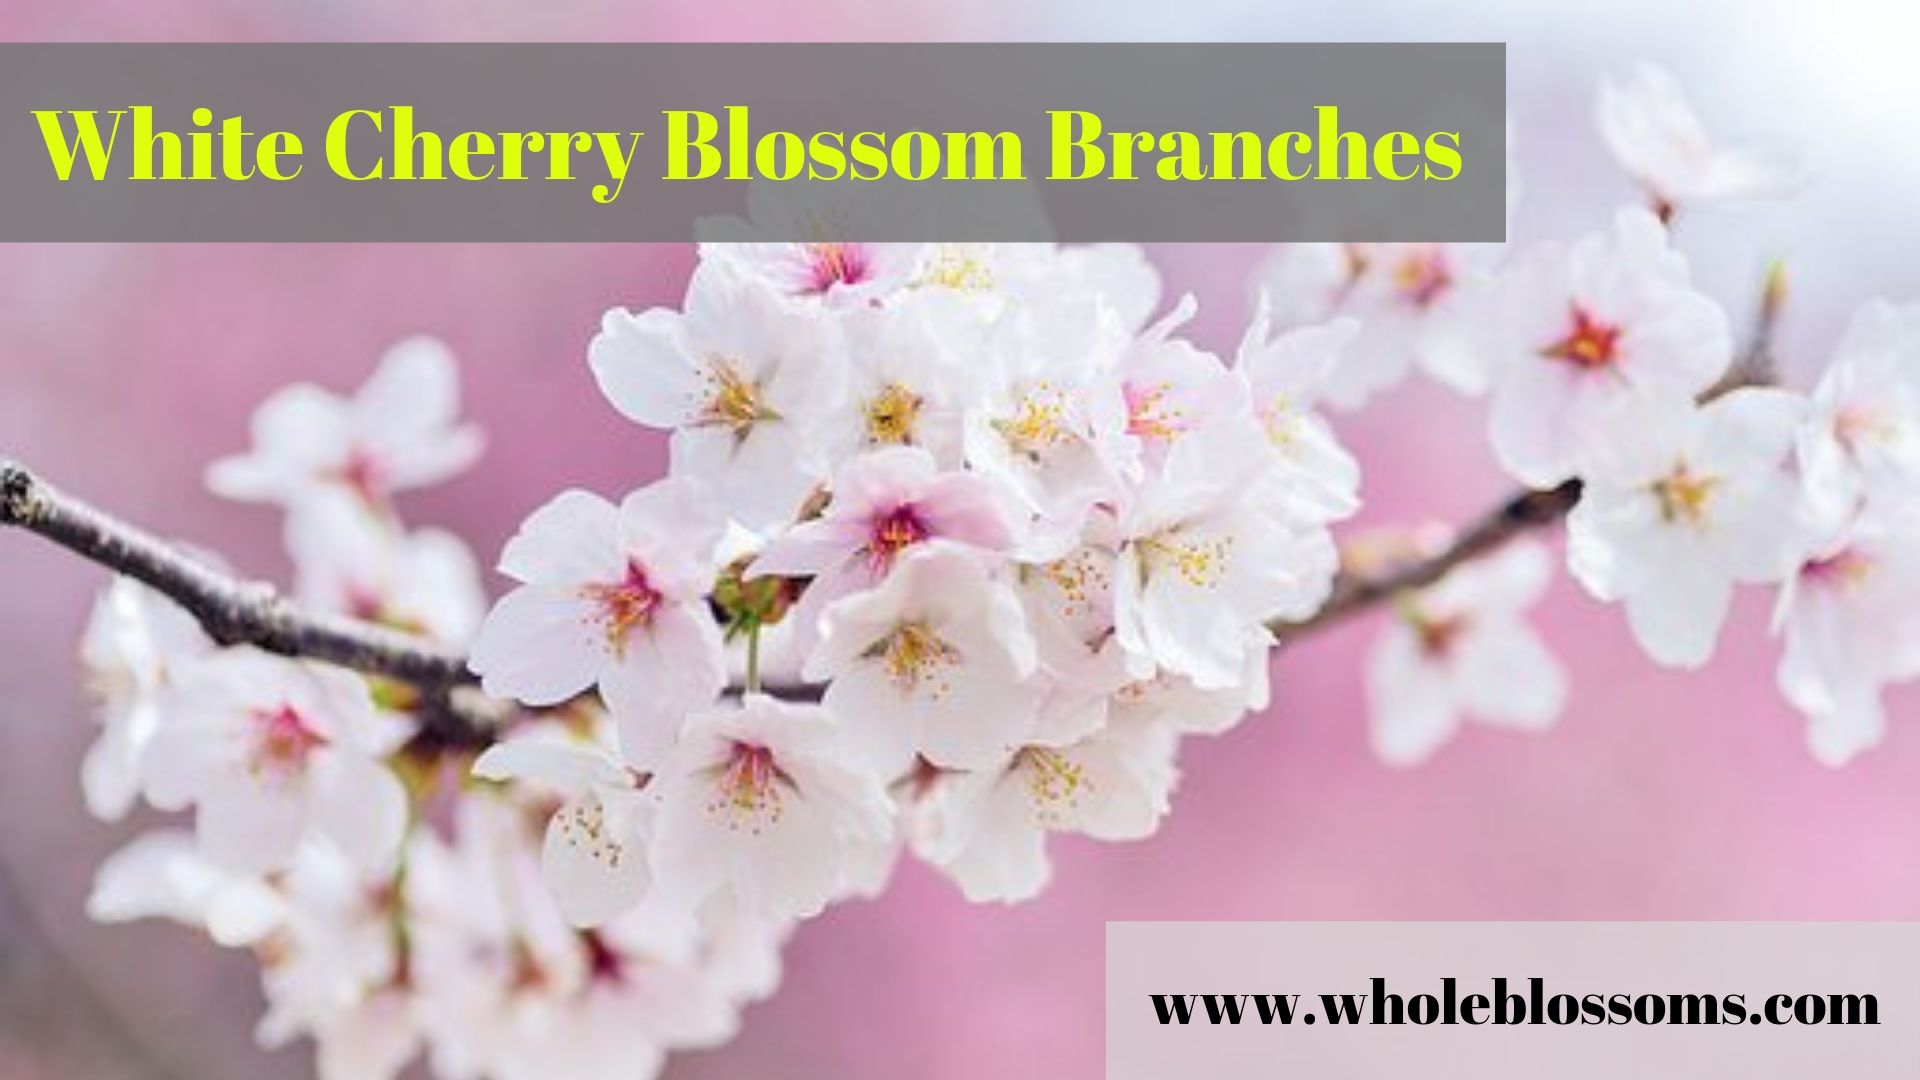 Get White Cherry Blossom Branches Whole Blossoms White Cherry Blossom Cherry Blossom Branch White Cherries